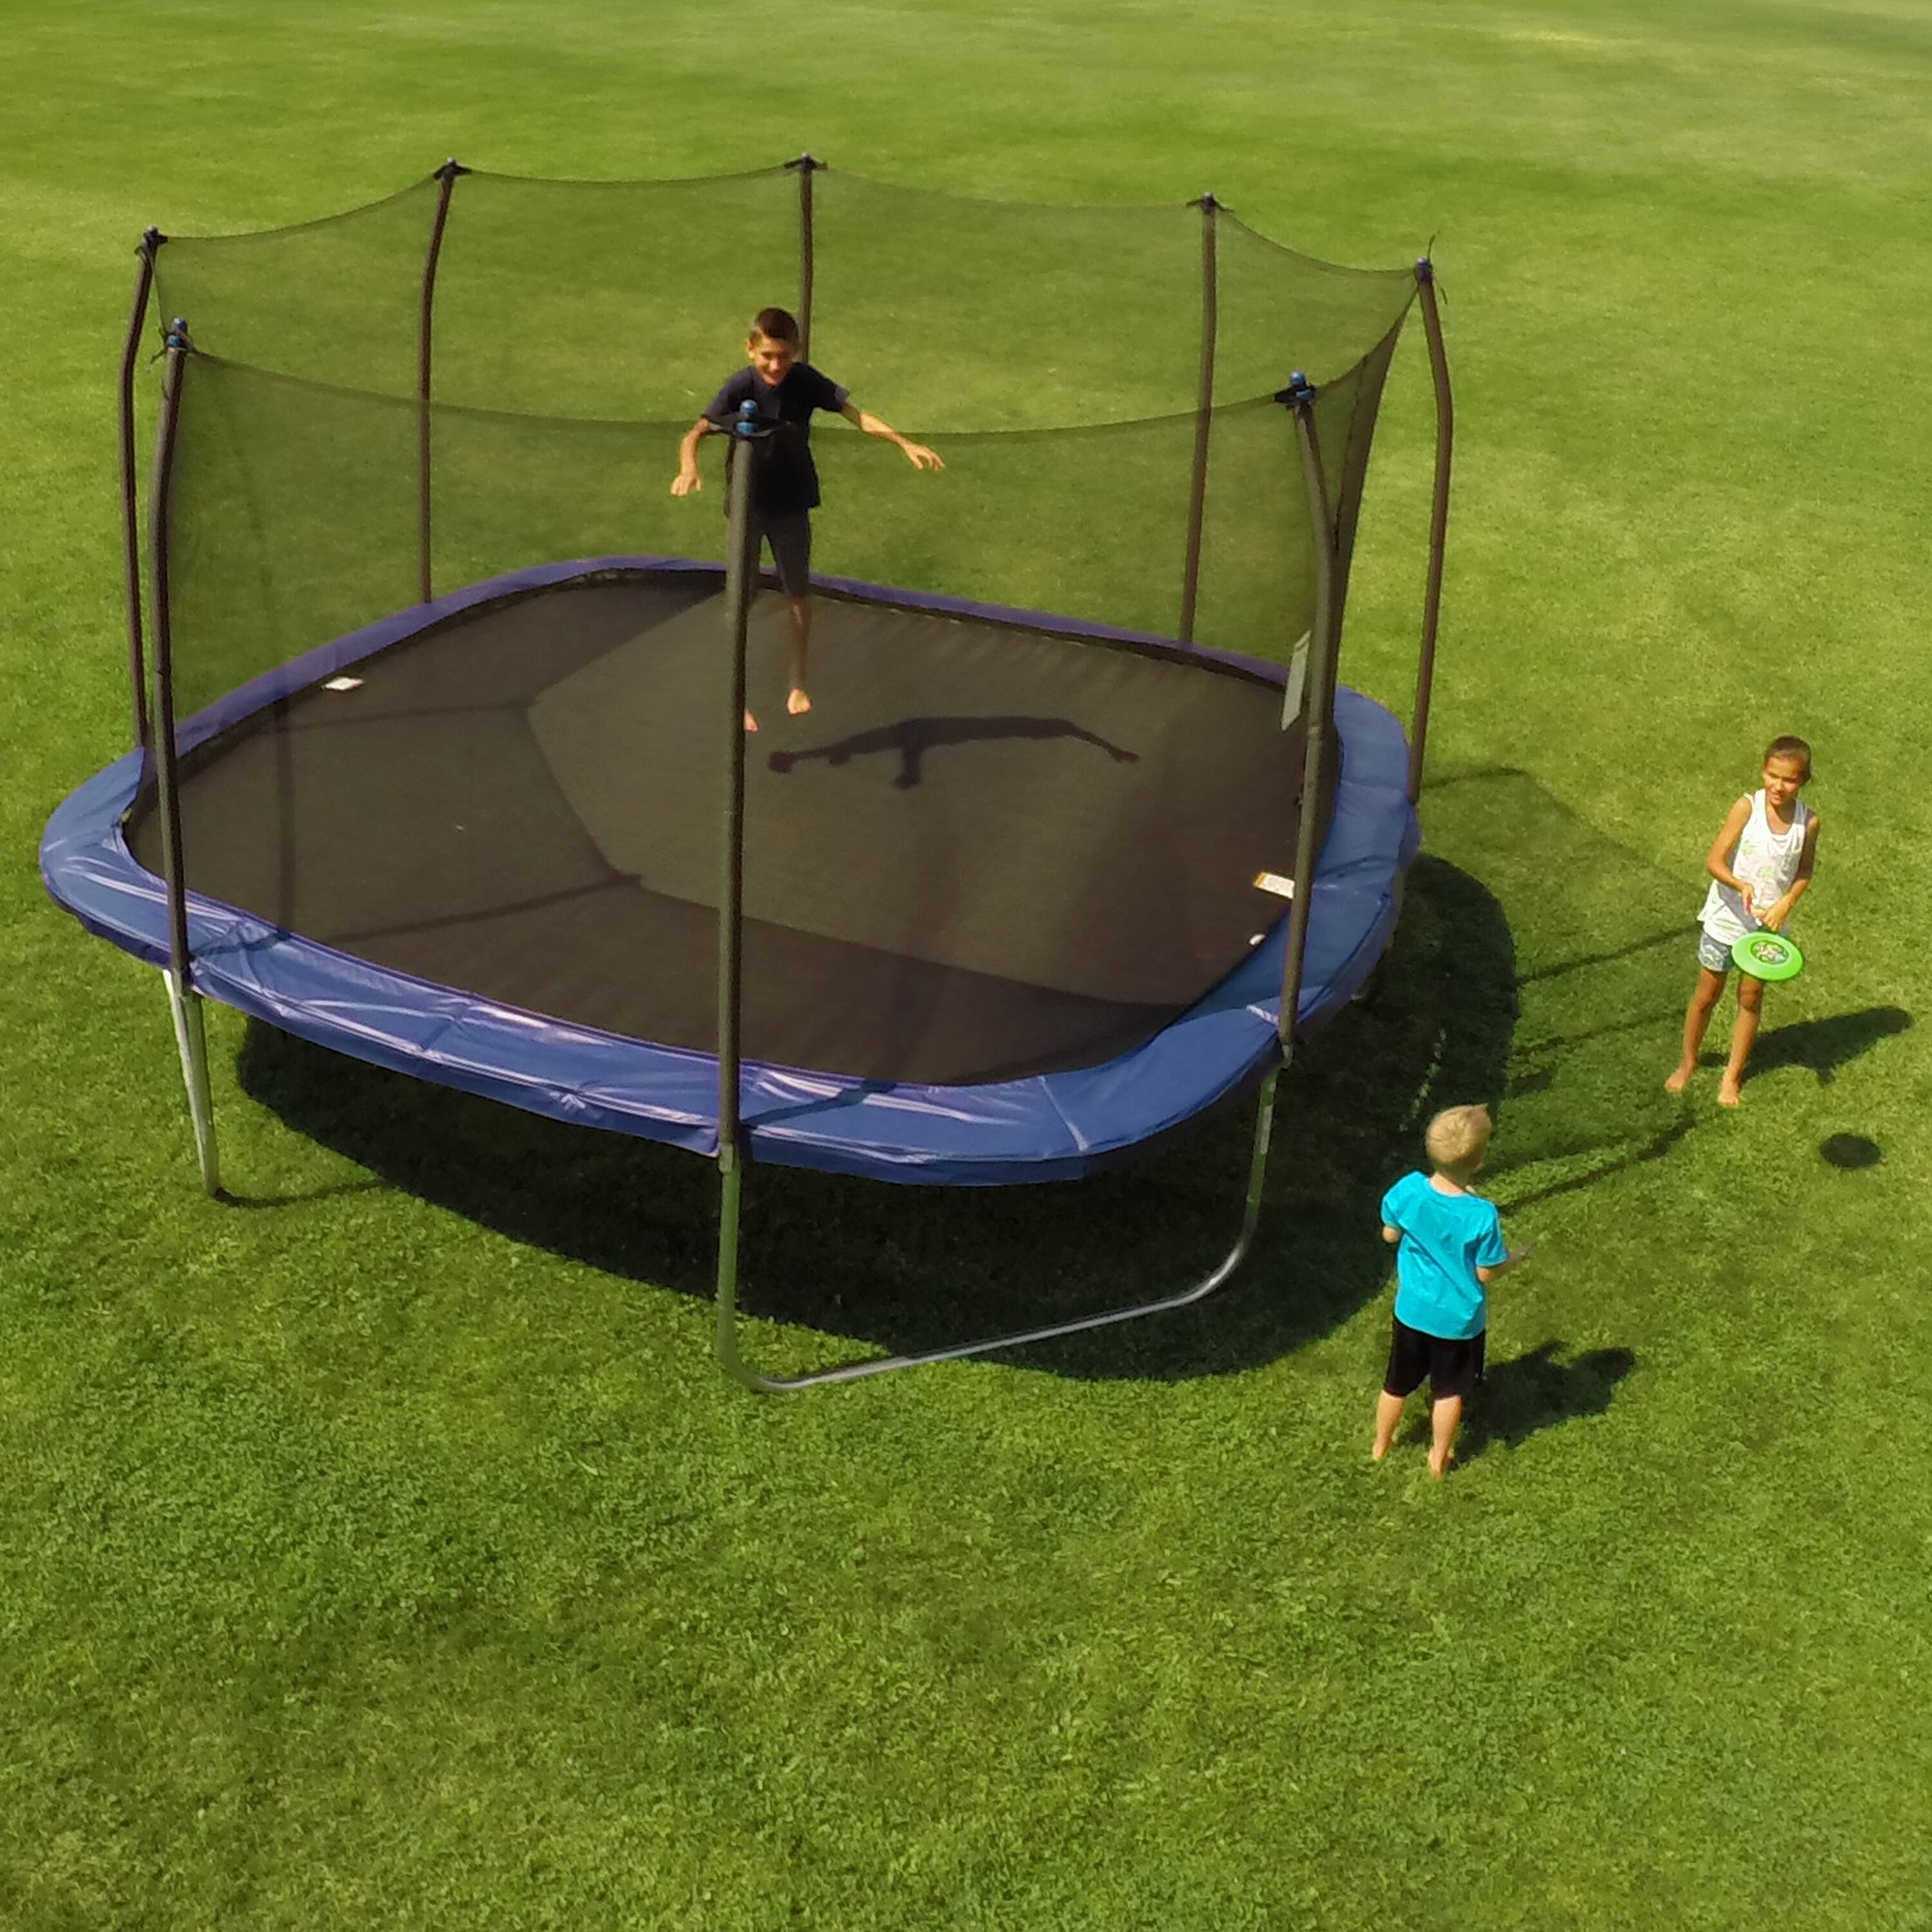 Skywalker 14 Foot Square Trampoline And Enclosure With: Skywalker 13' Square Trampoline With Enclosure & Reviews